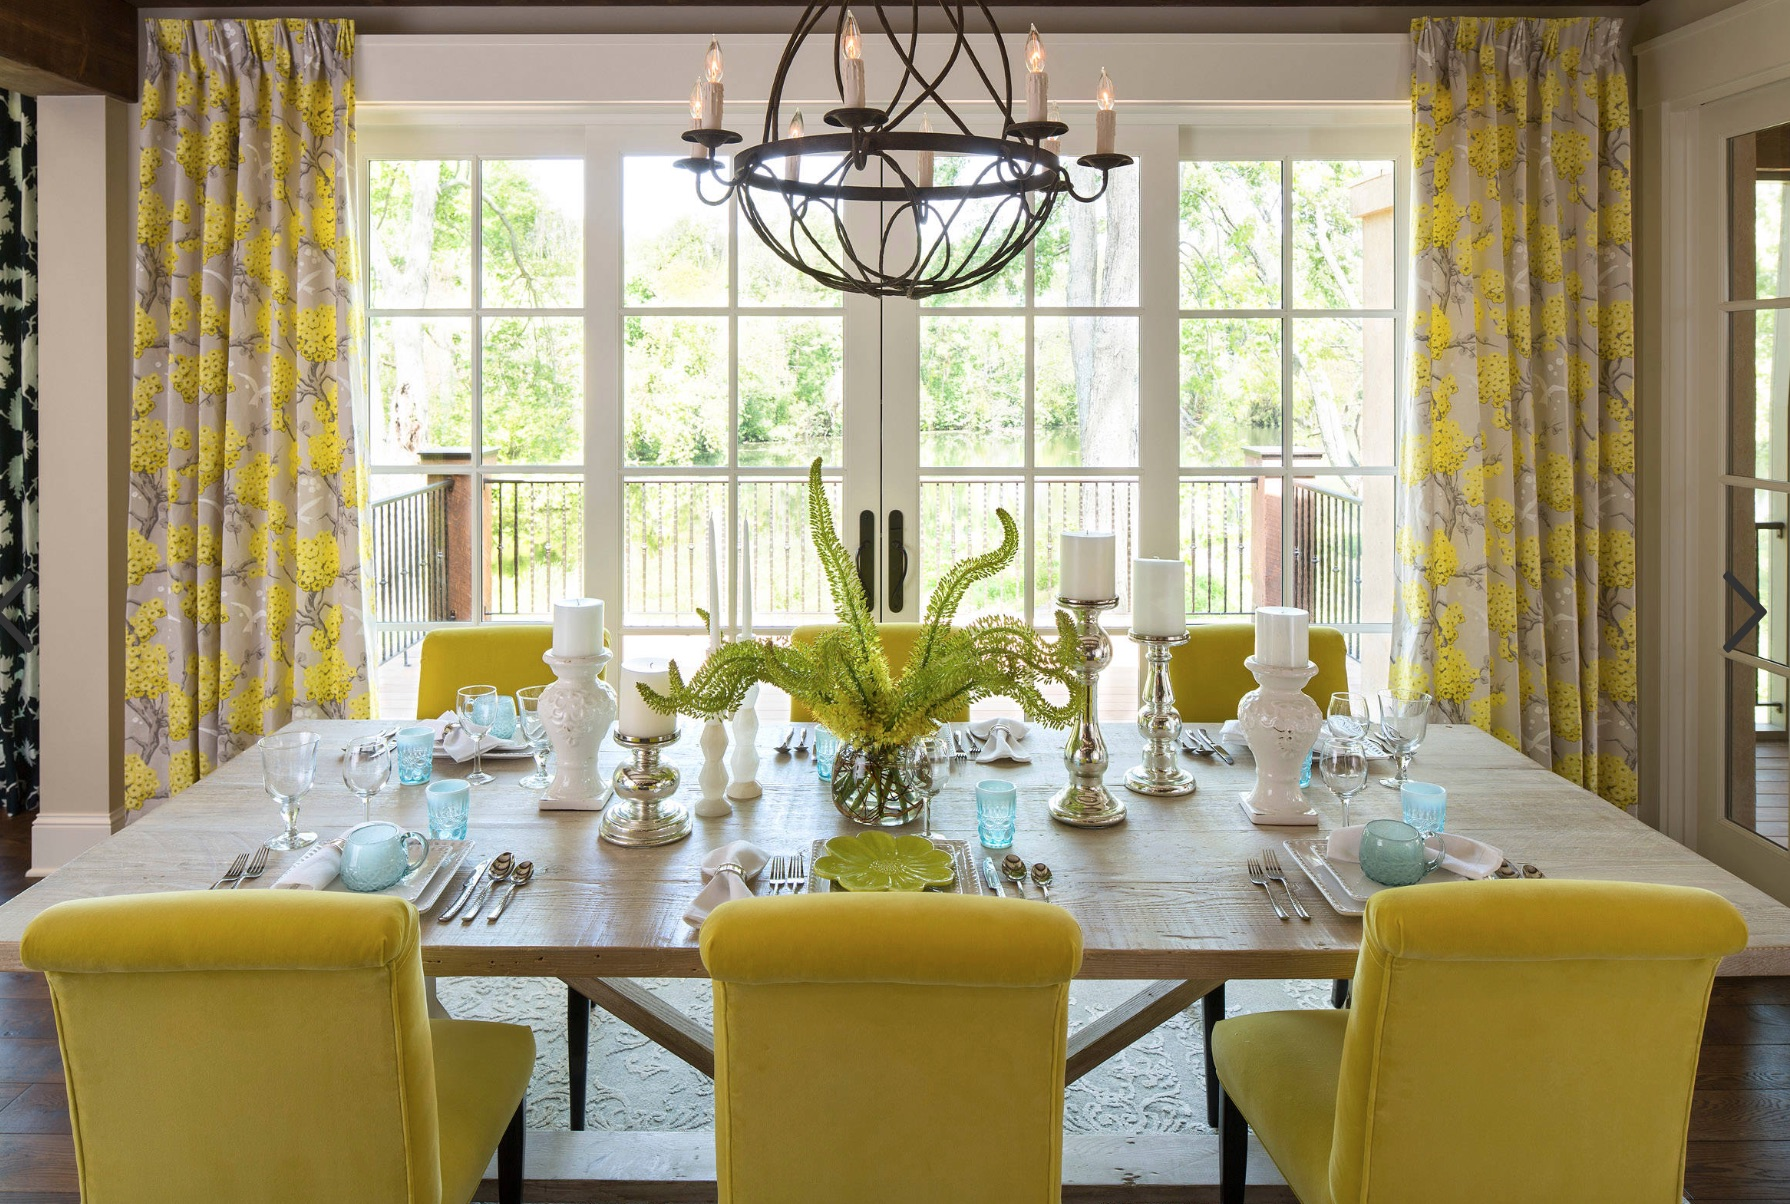 yellow dining chairs and yellow print window treatments